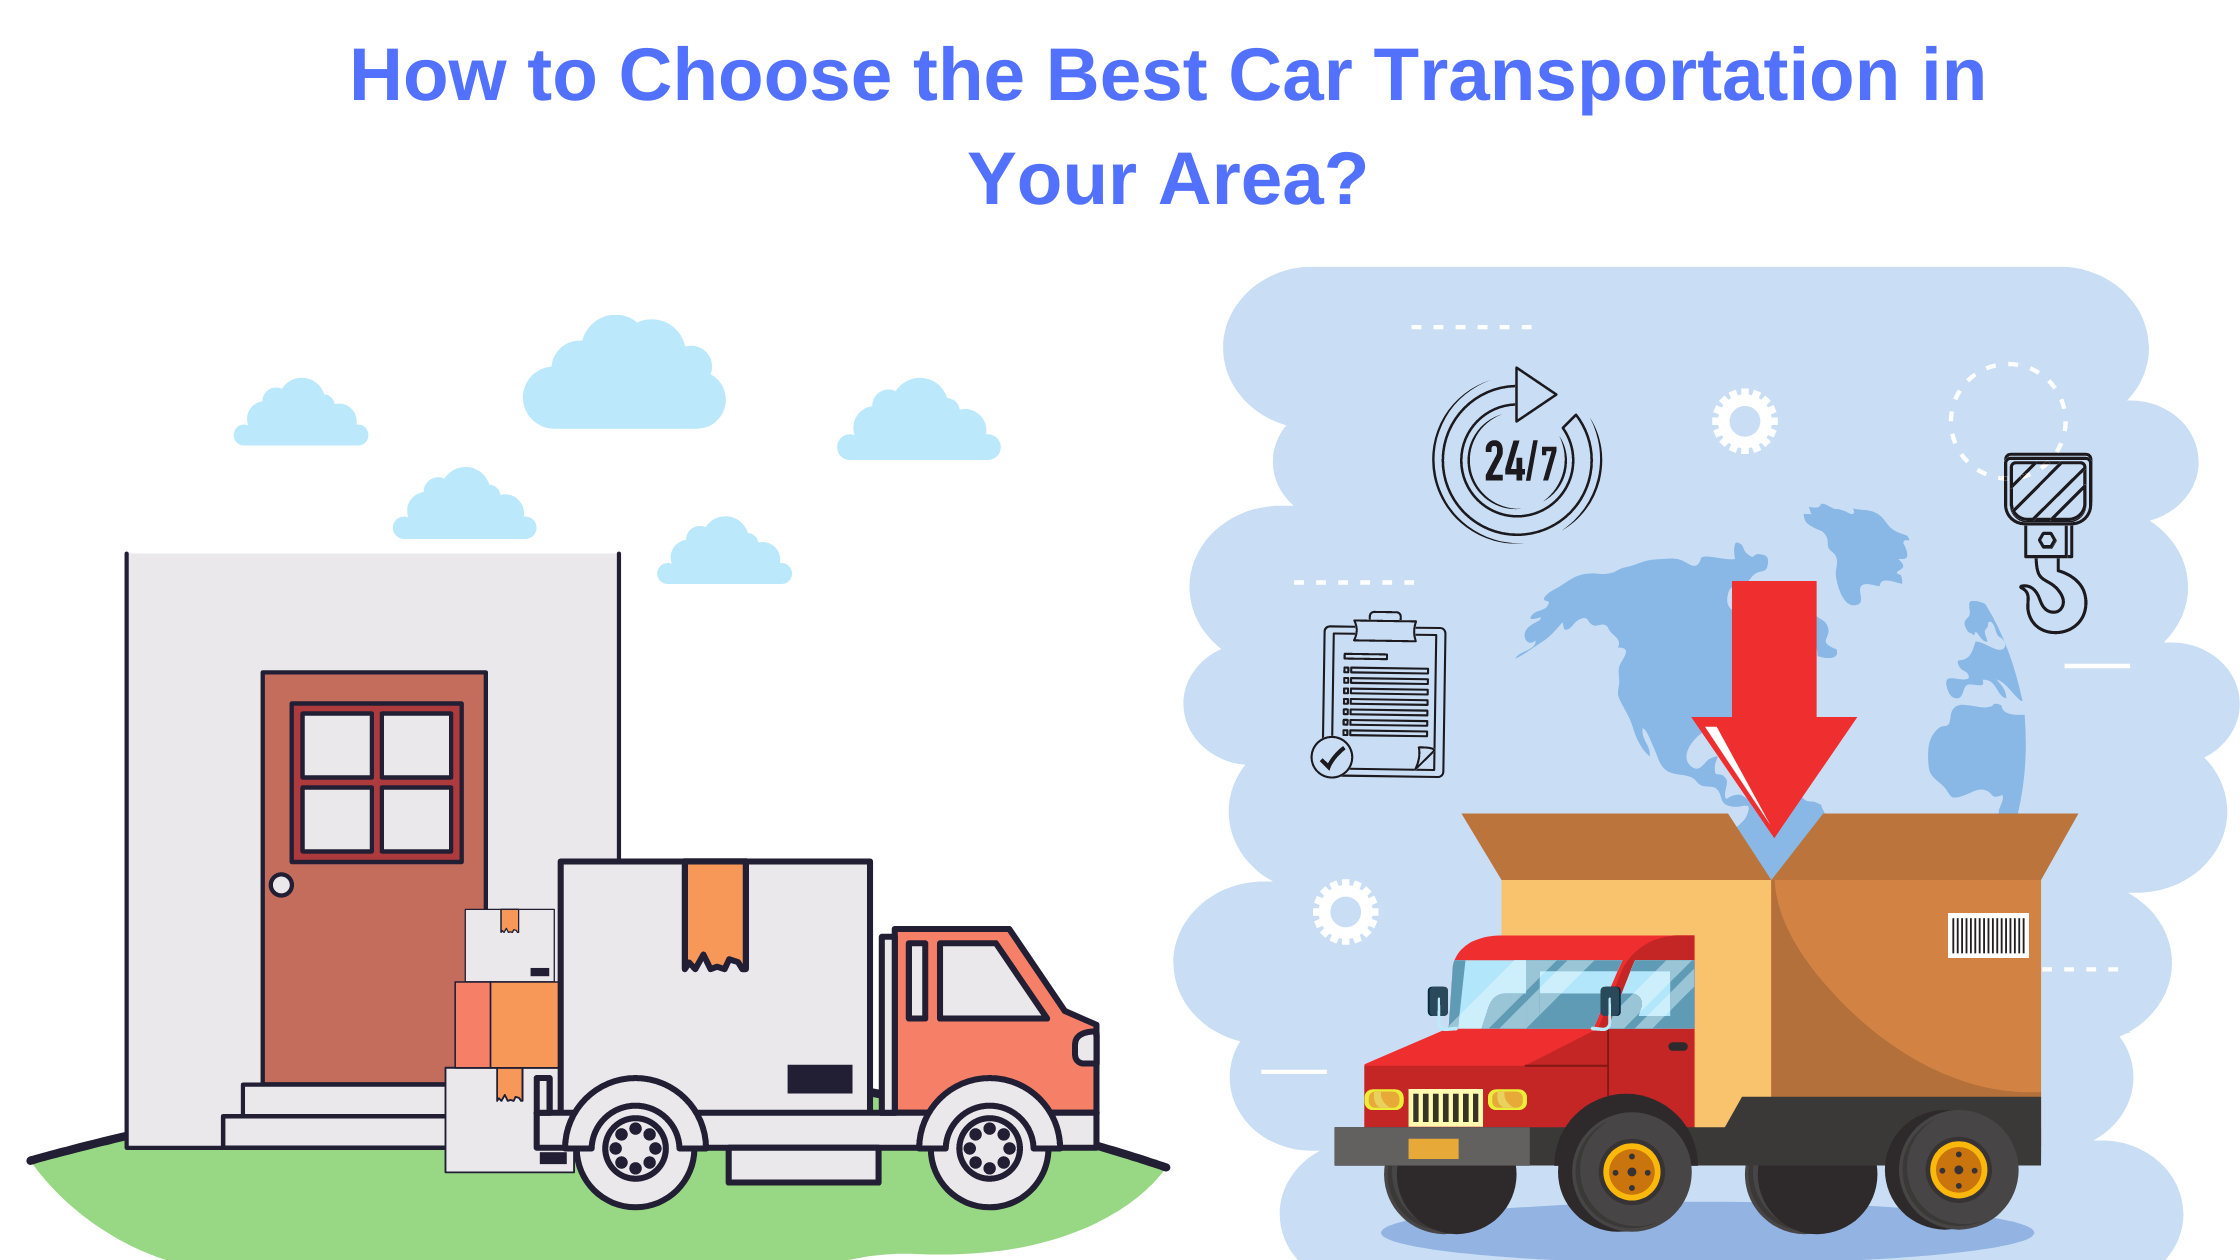 How to Choose the Best Car Transportation in Your Area?